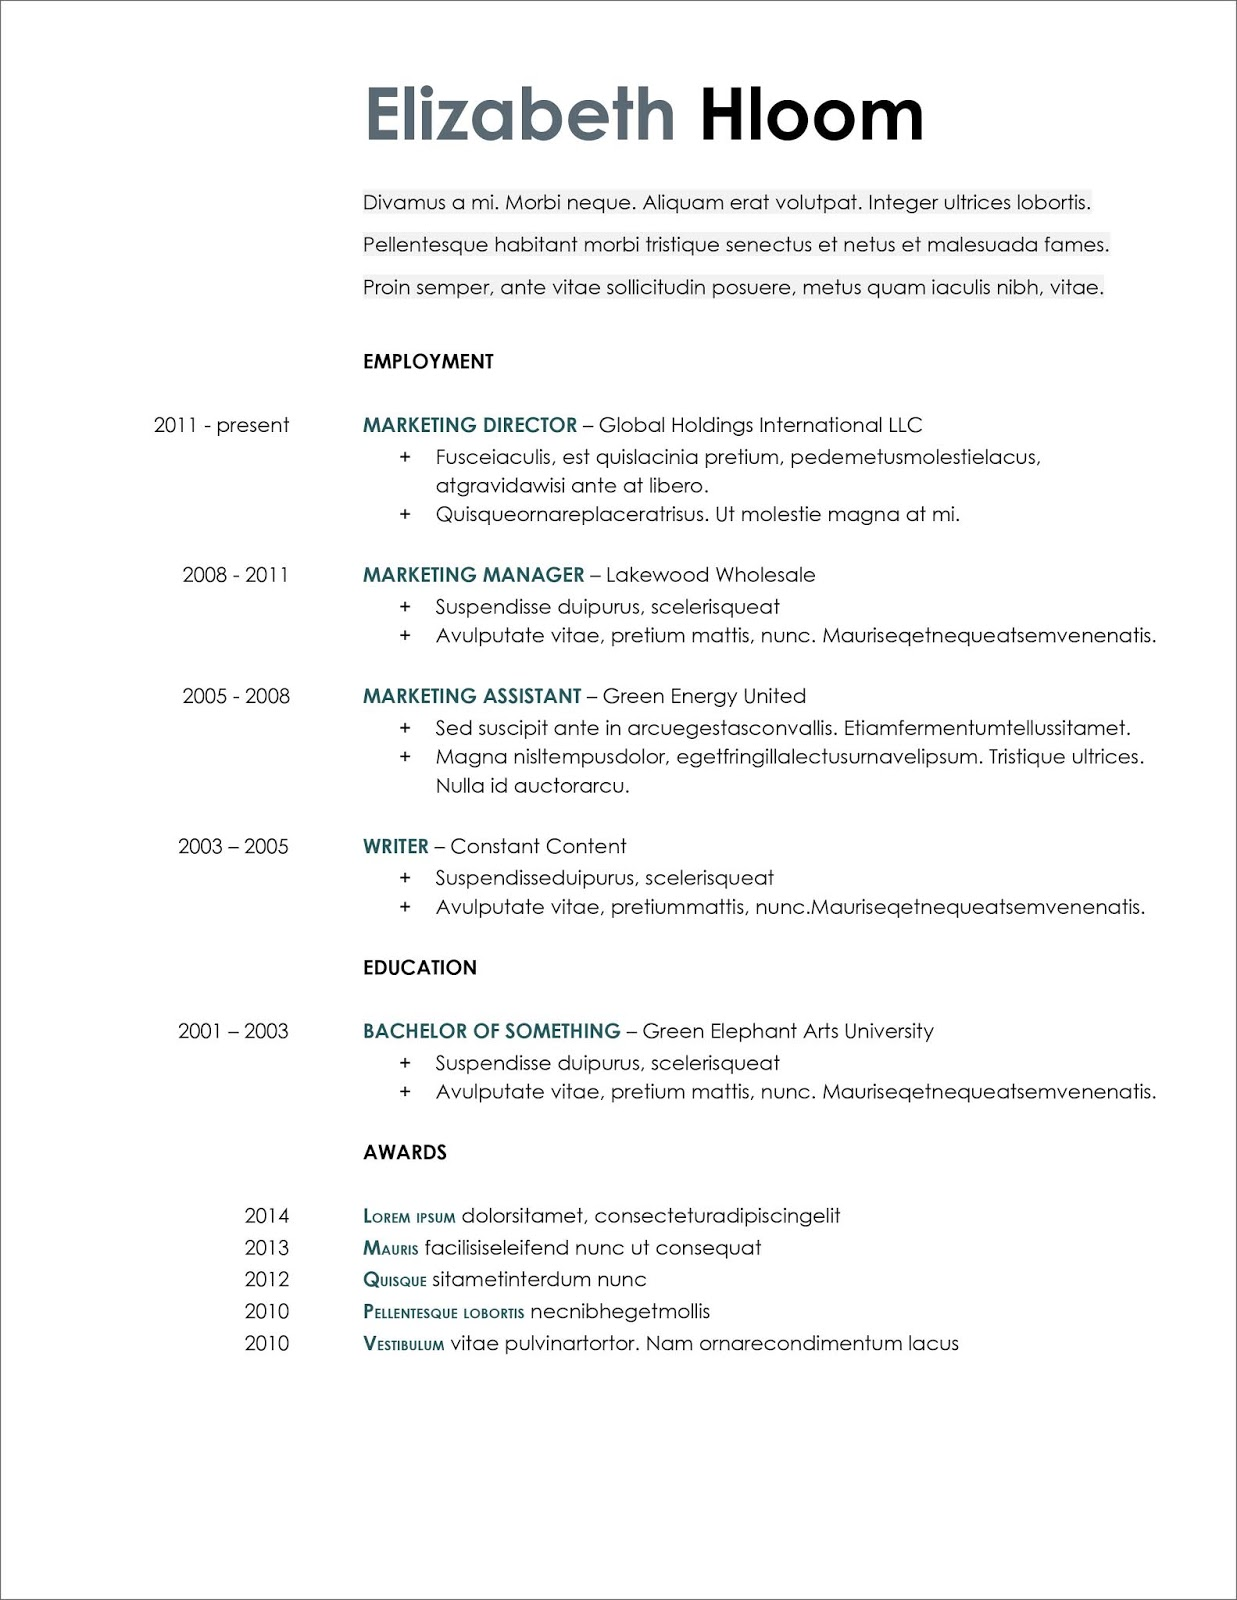 marriage resume format for girl in word marriage resume format for girl in word download marriage resume format for girl in word format